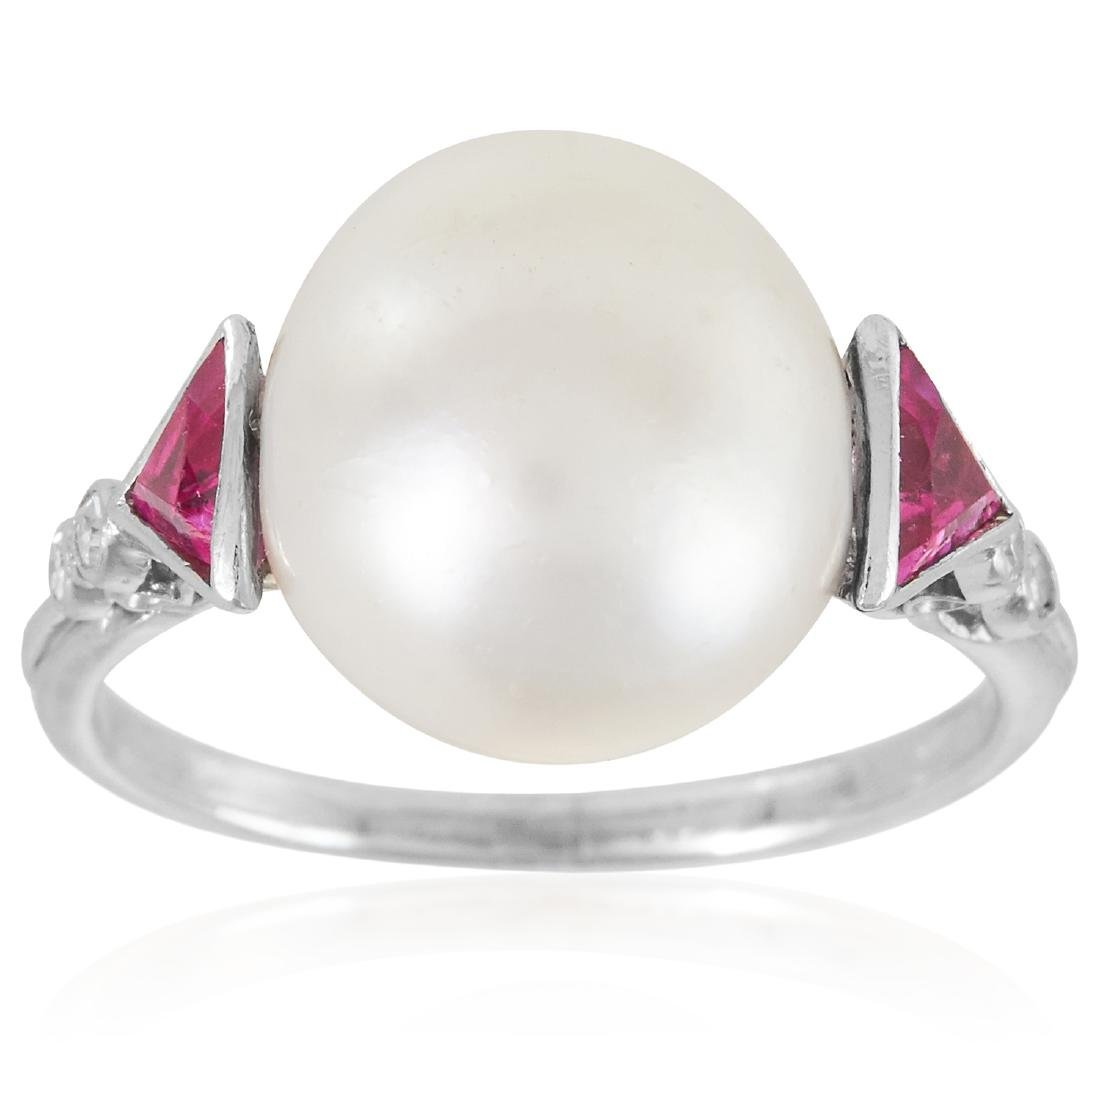 AN ANTIQUE NATURAL PEARL, RUBY AND DIAMOND DRESS RING